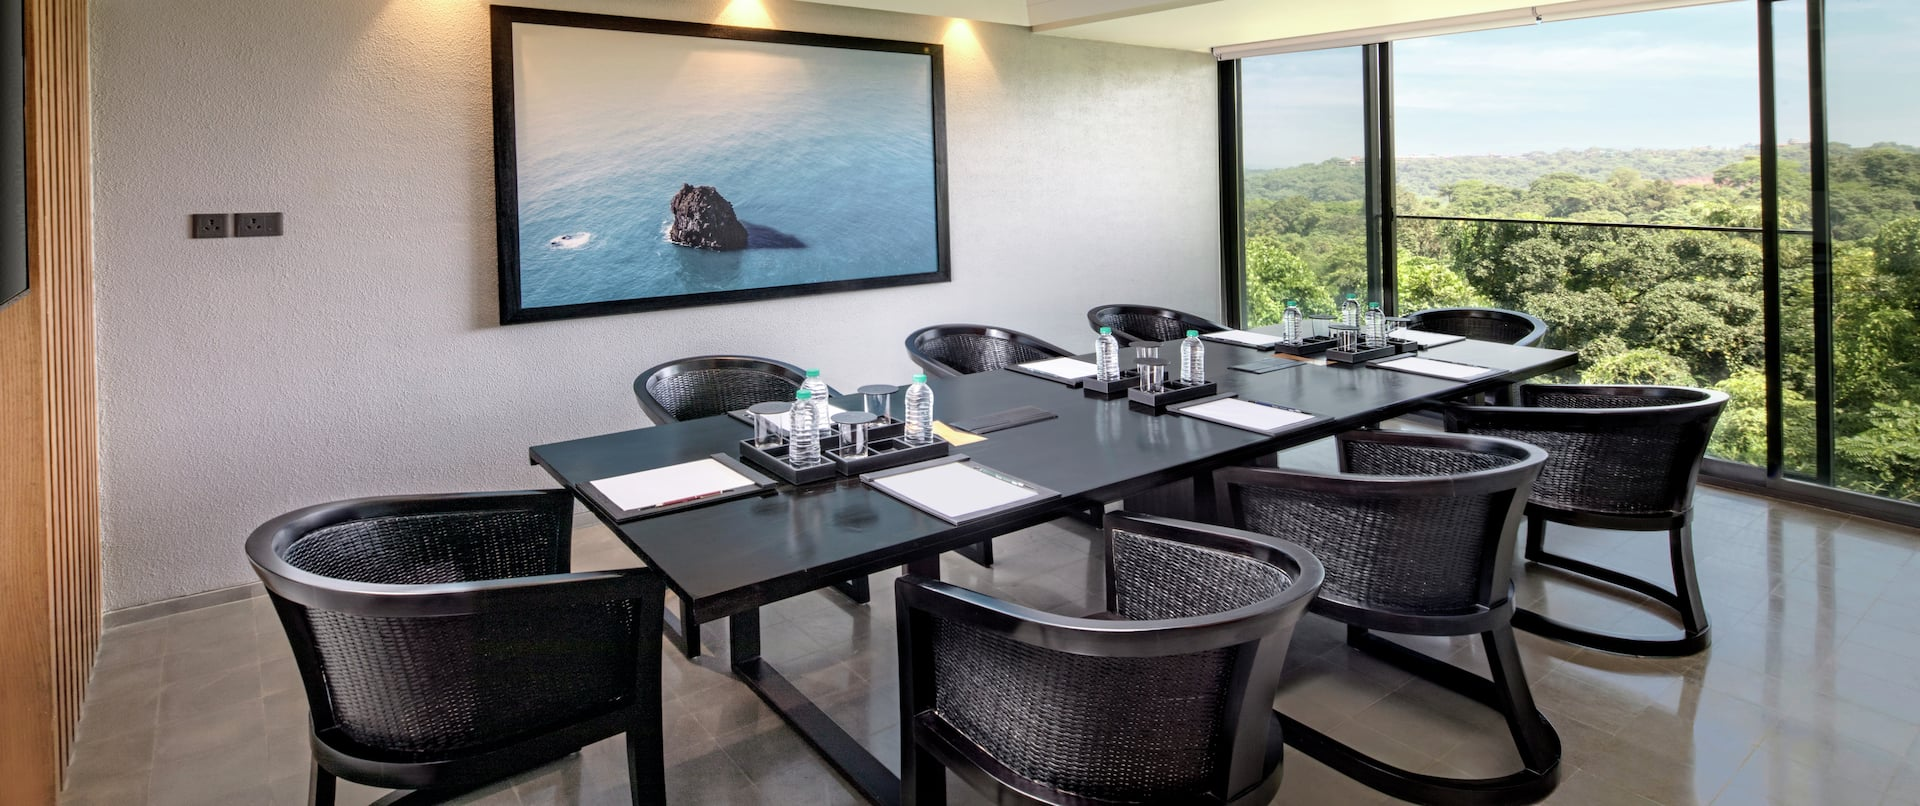 Executive Boardroom at Level 5